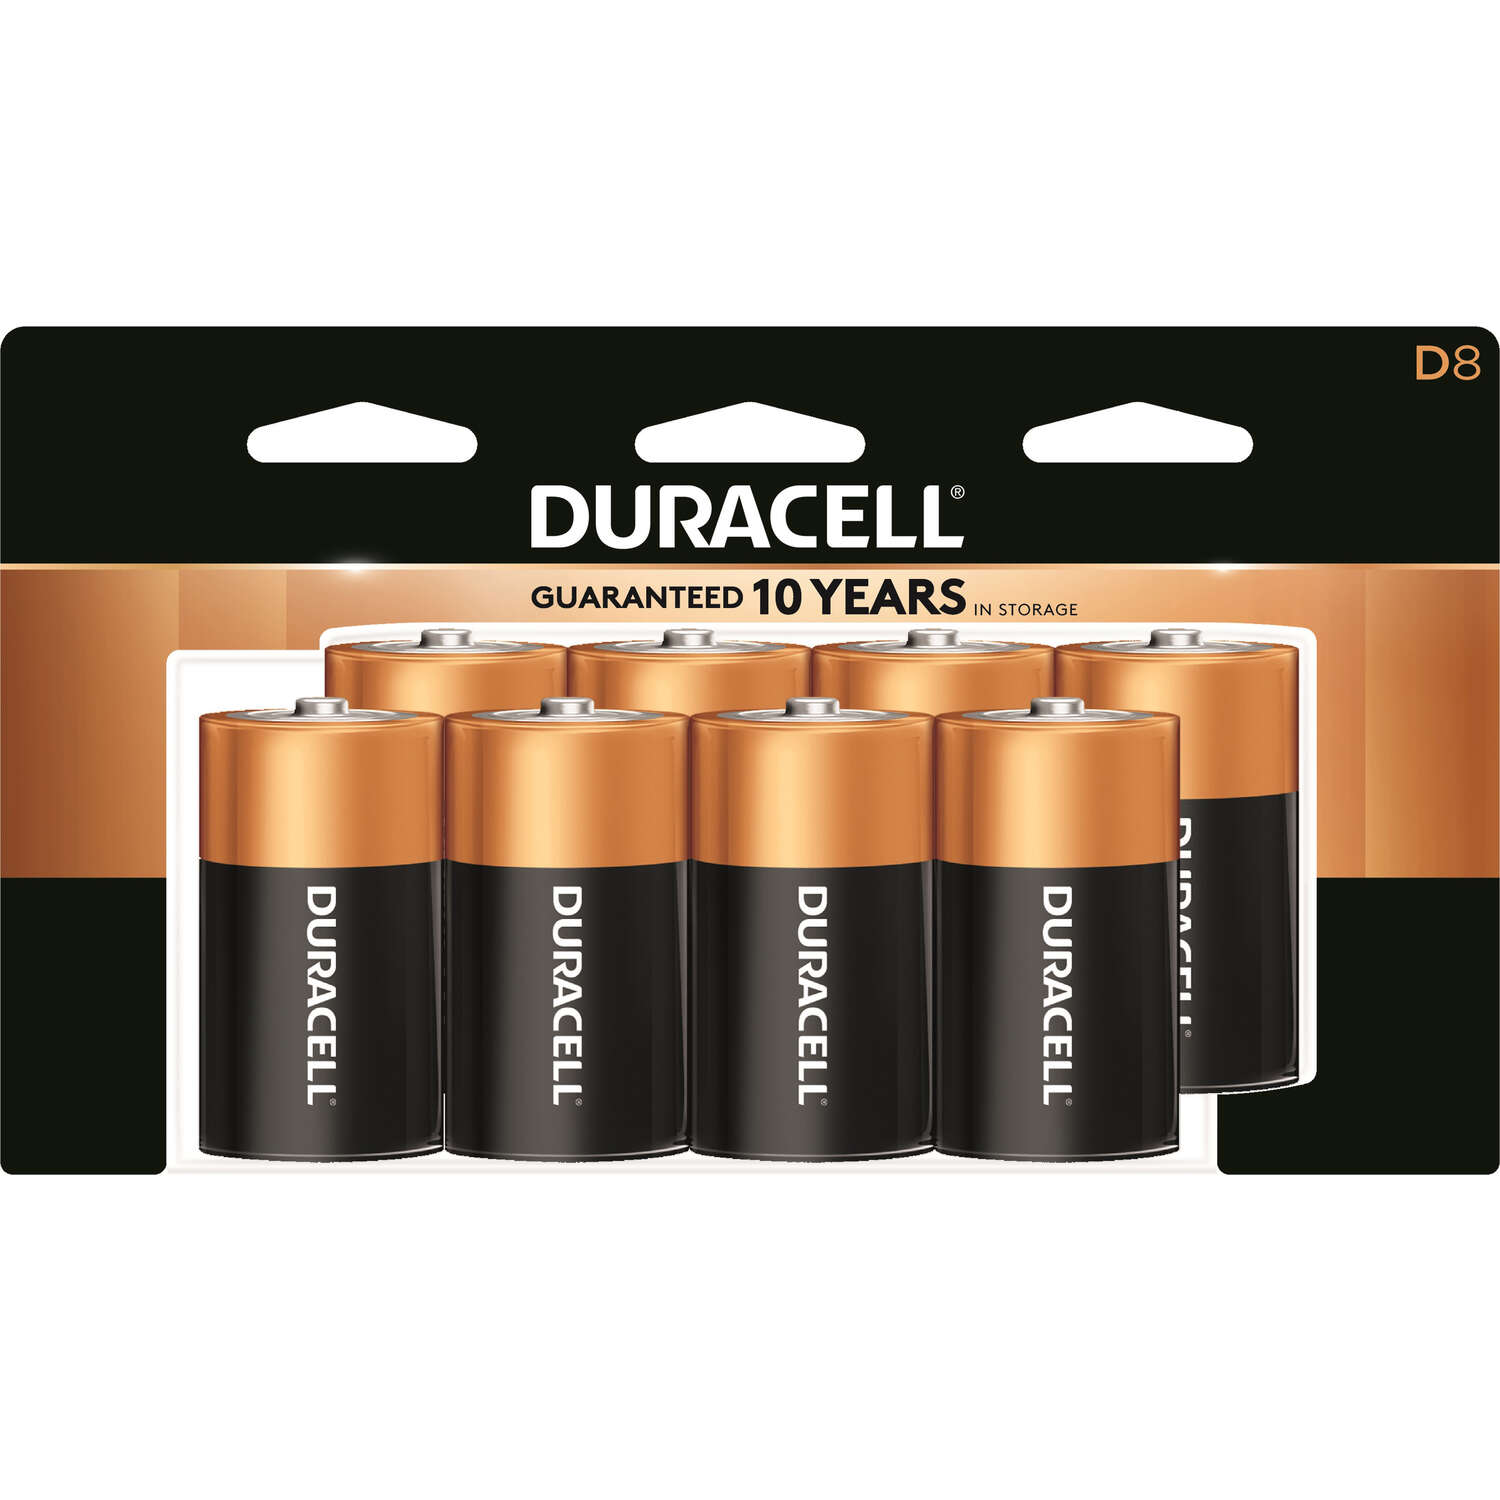 Duracell  Coppertop  D  Alkaline  Batteries  8 pk Carded